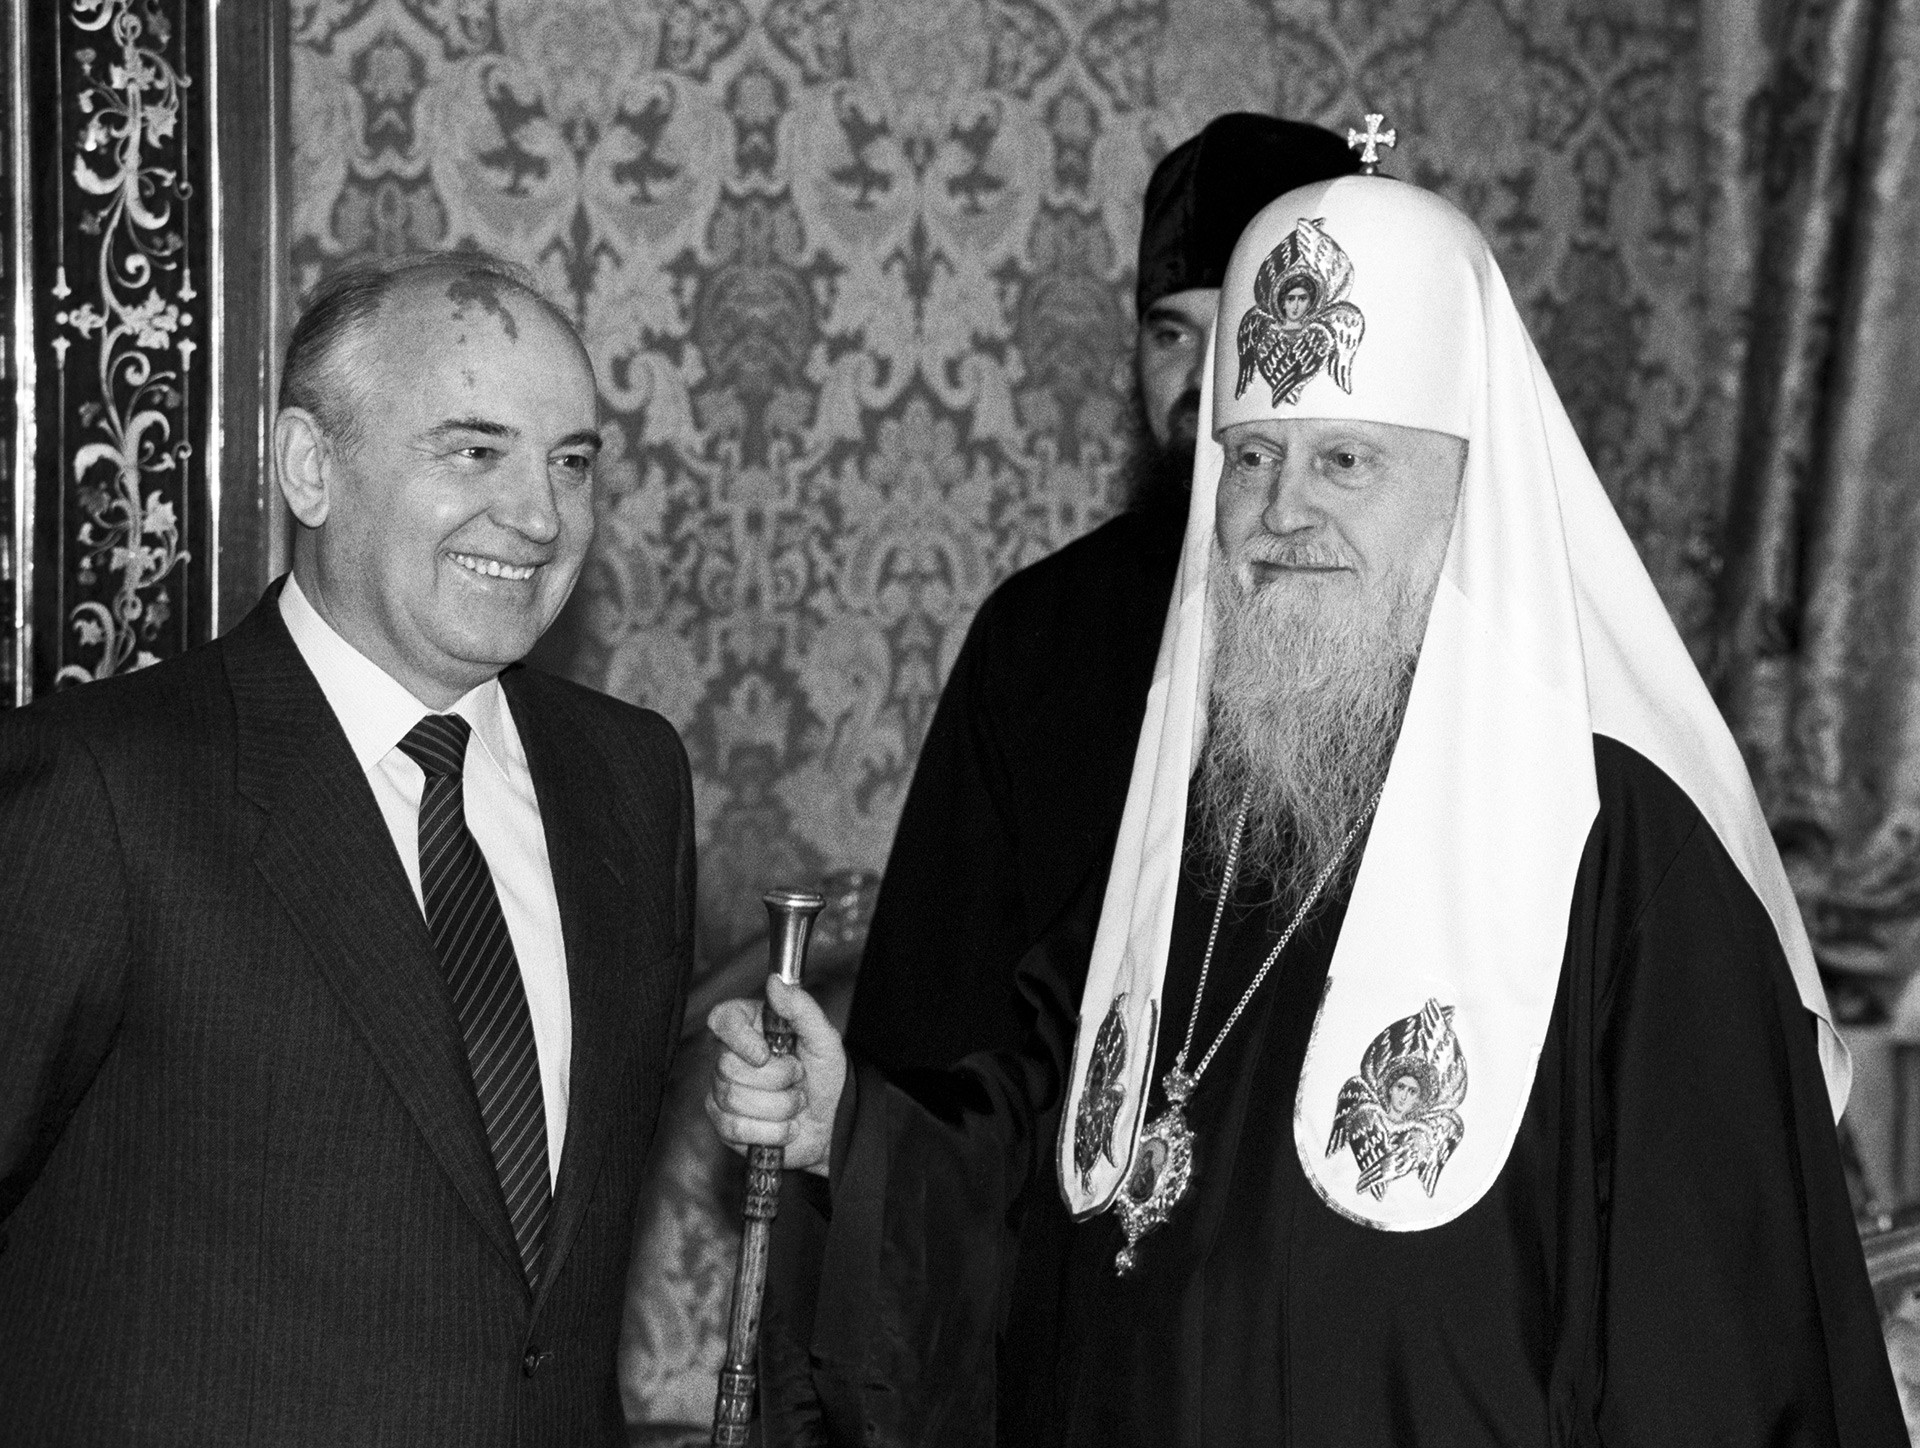 Mikhail Gorbachev and Patriarch Pimen at the meeting.